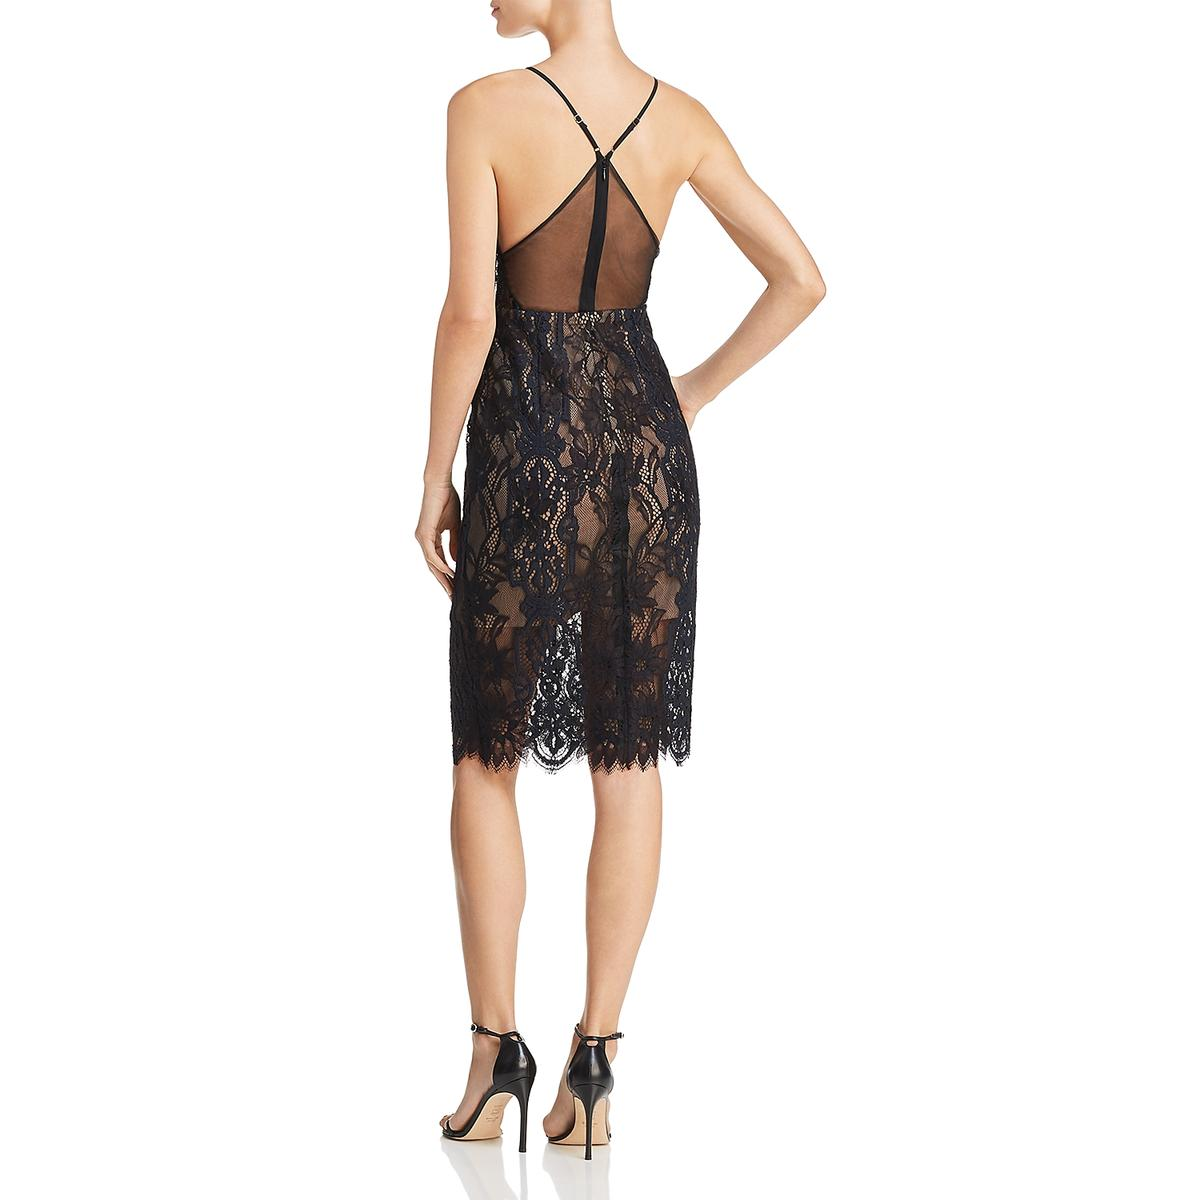 5e2011e8c1 BCBG Max Azria Womens Elvita Lace Sequined Party Cocktail Dress BHFO ...